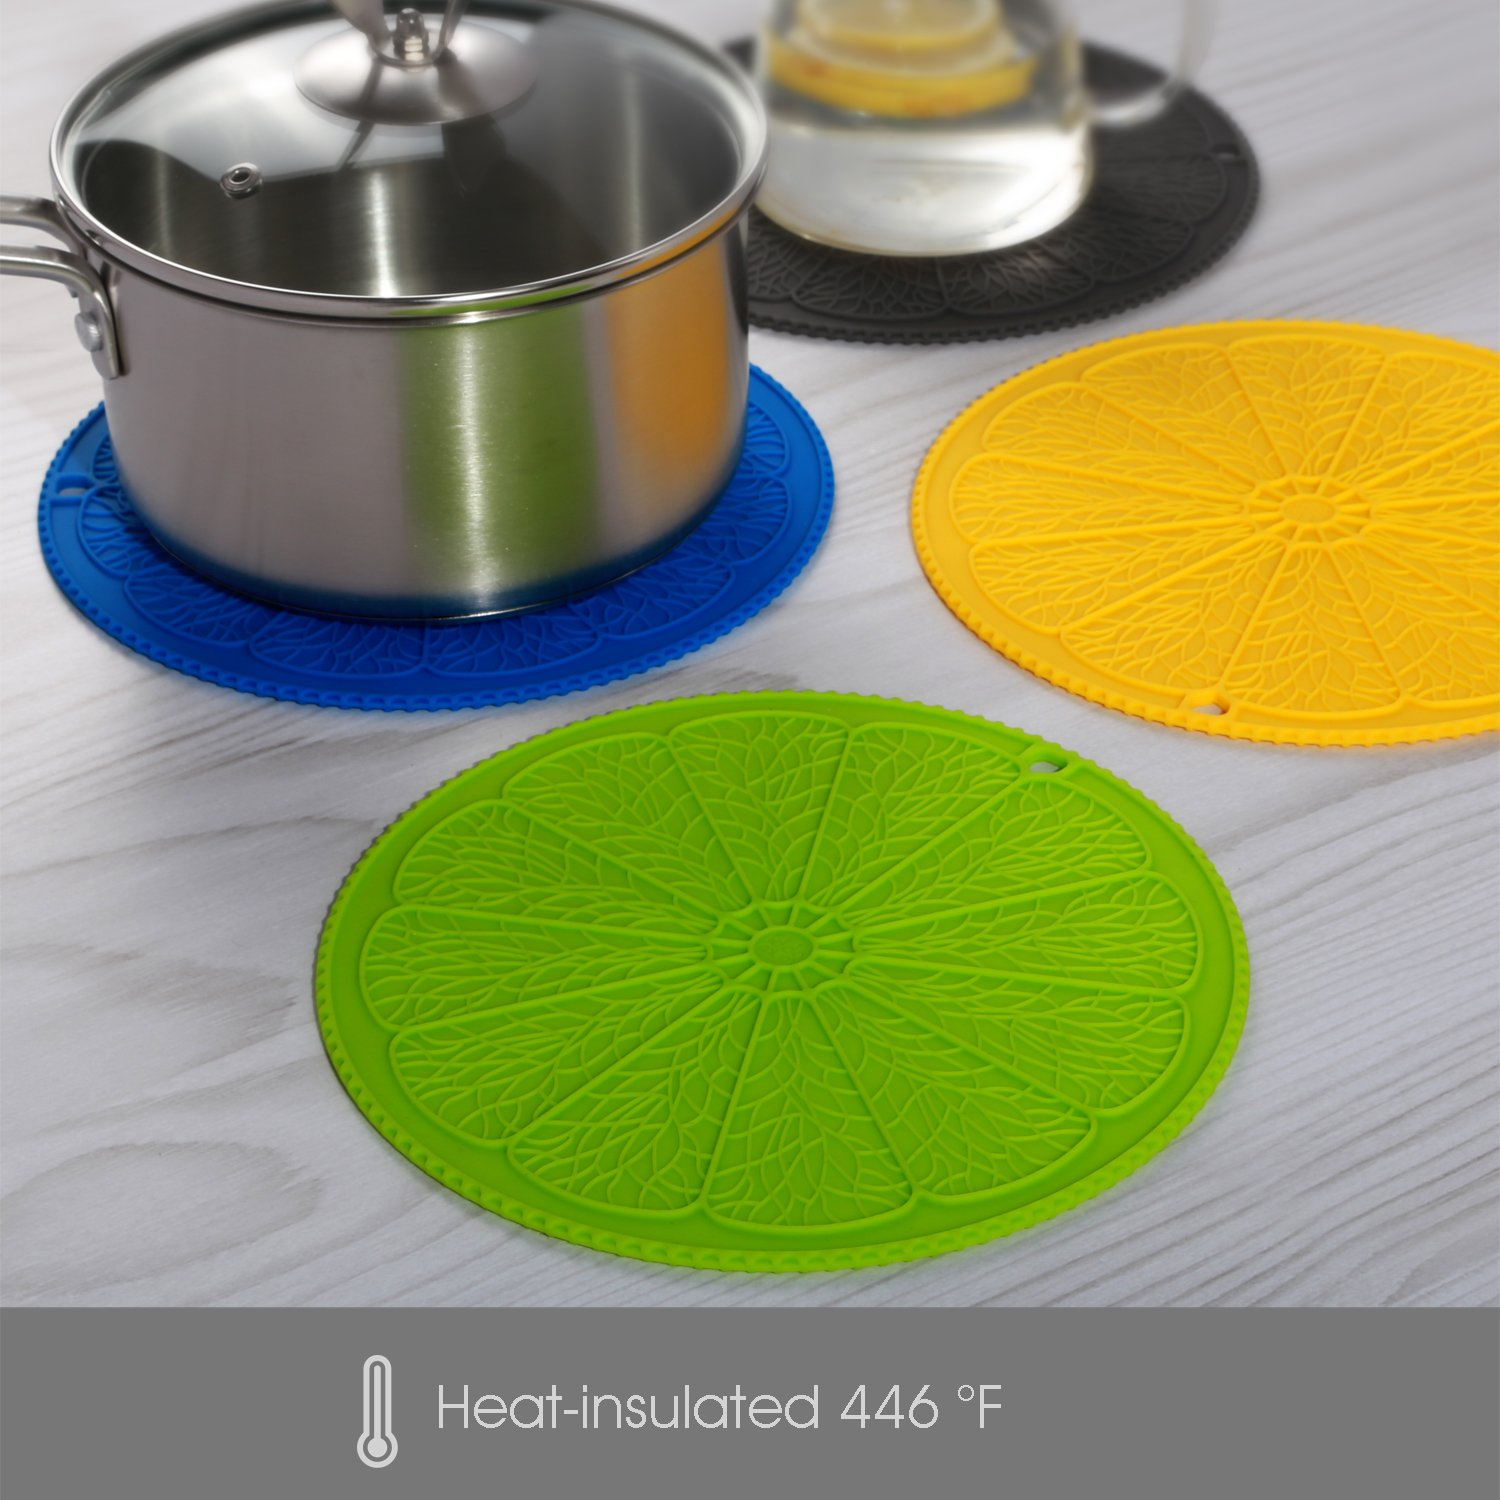 IDDOMUM Silicone Trivet (4-Piece Set) for Hot Pots, Dishes and Pans, Insulated Durable Hot Pads, Hot Holder(Color)